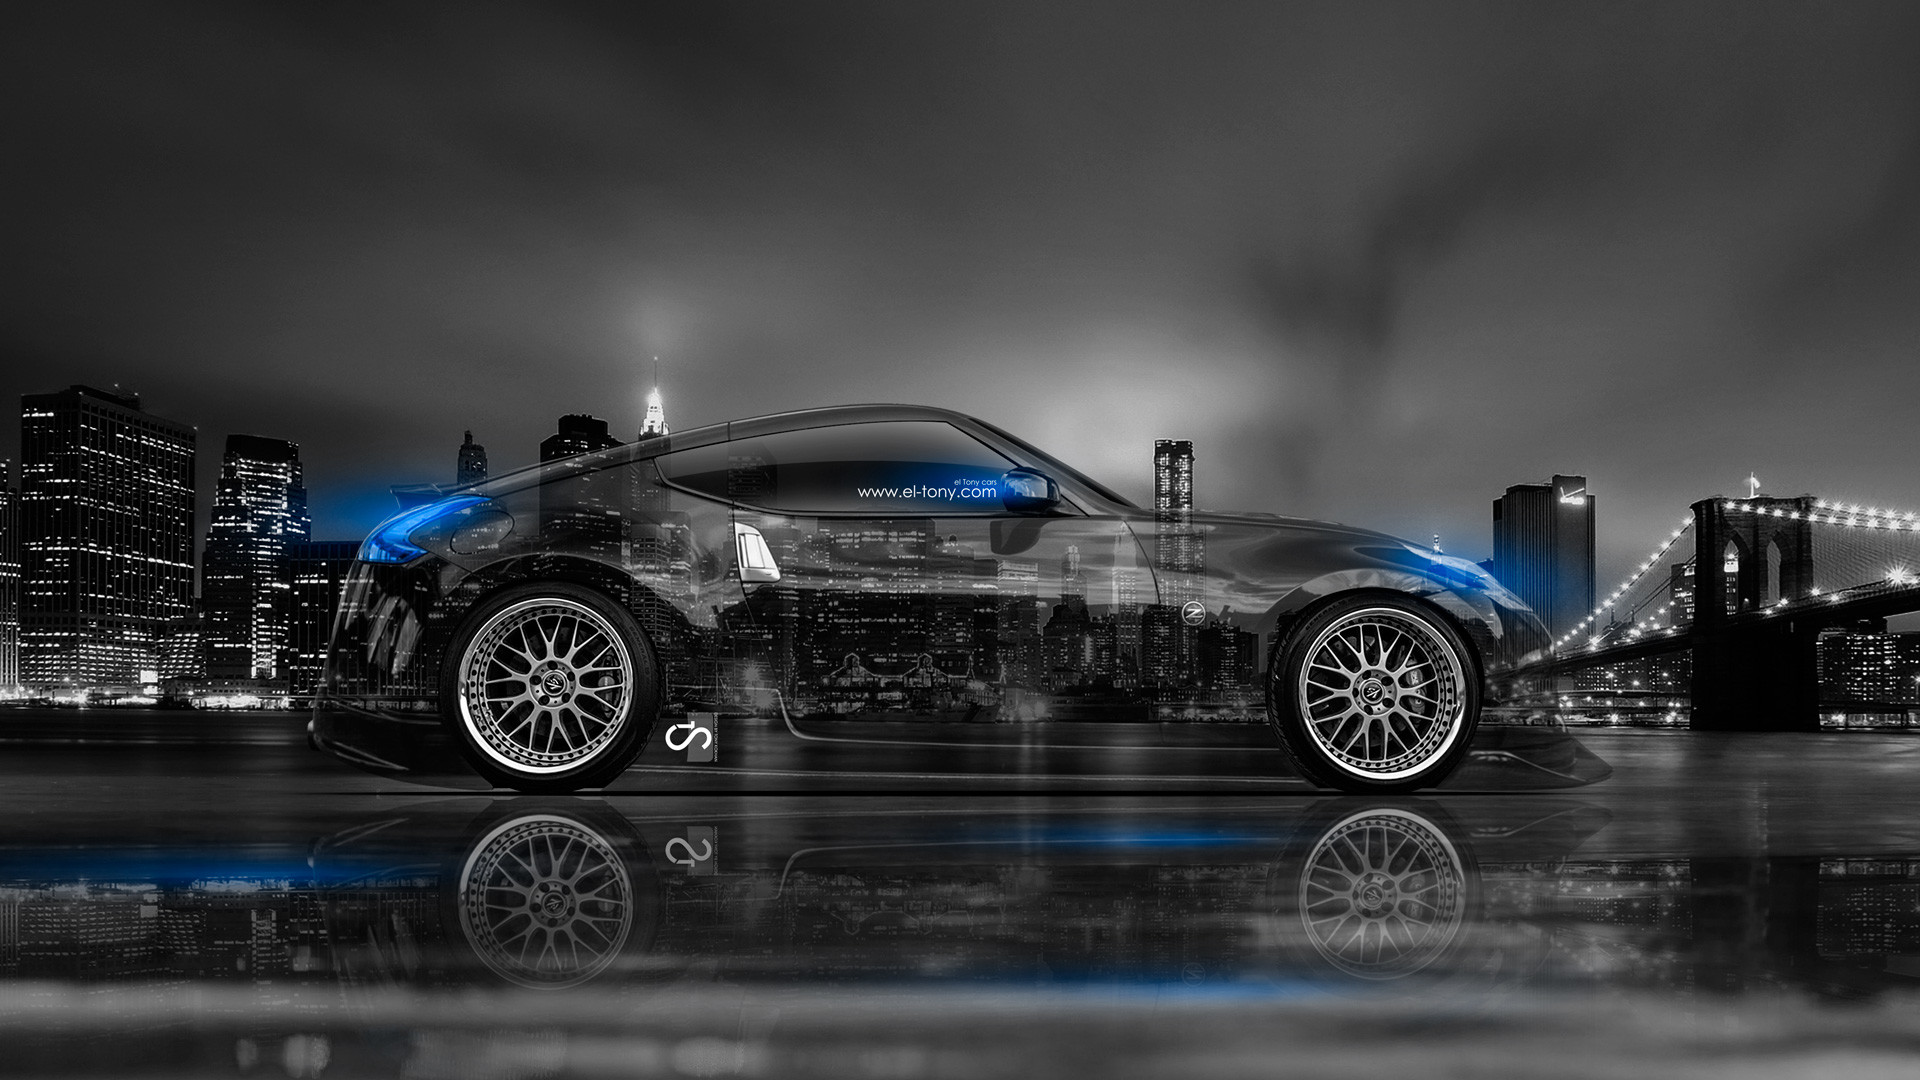 Merveilleux 1920x1200 Nissan 370z Nismo Gumball 3000 Rally Nissan Nism Tuning Tuning  Rear View